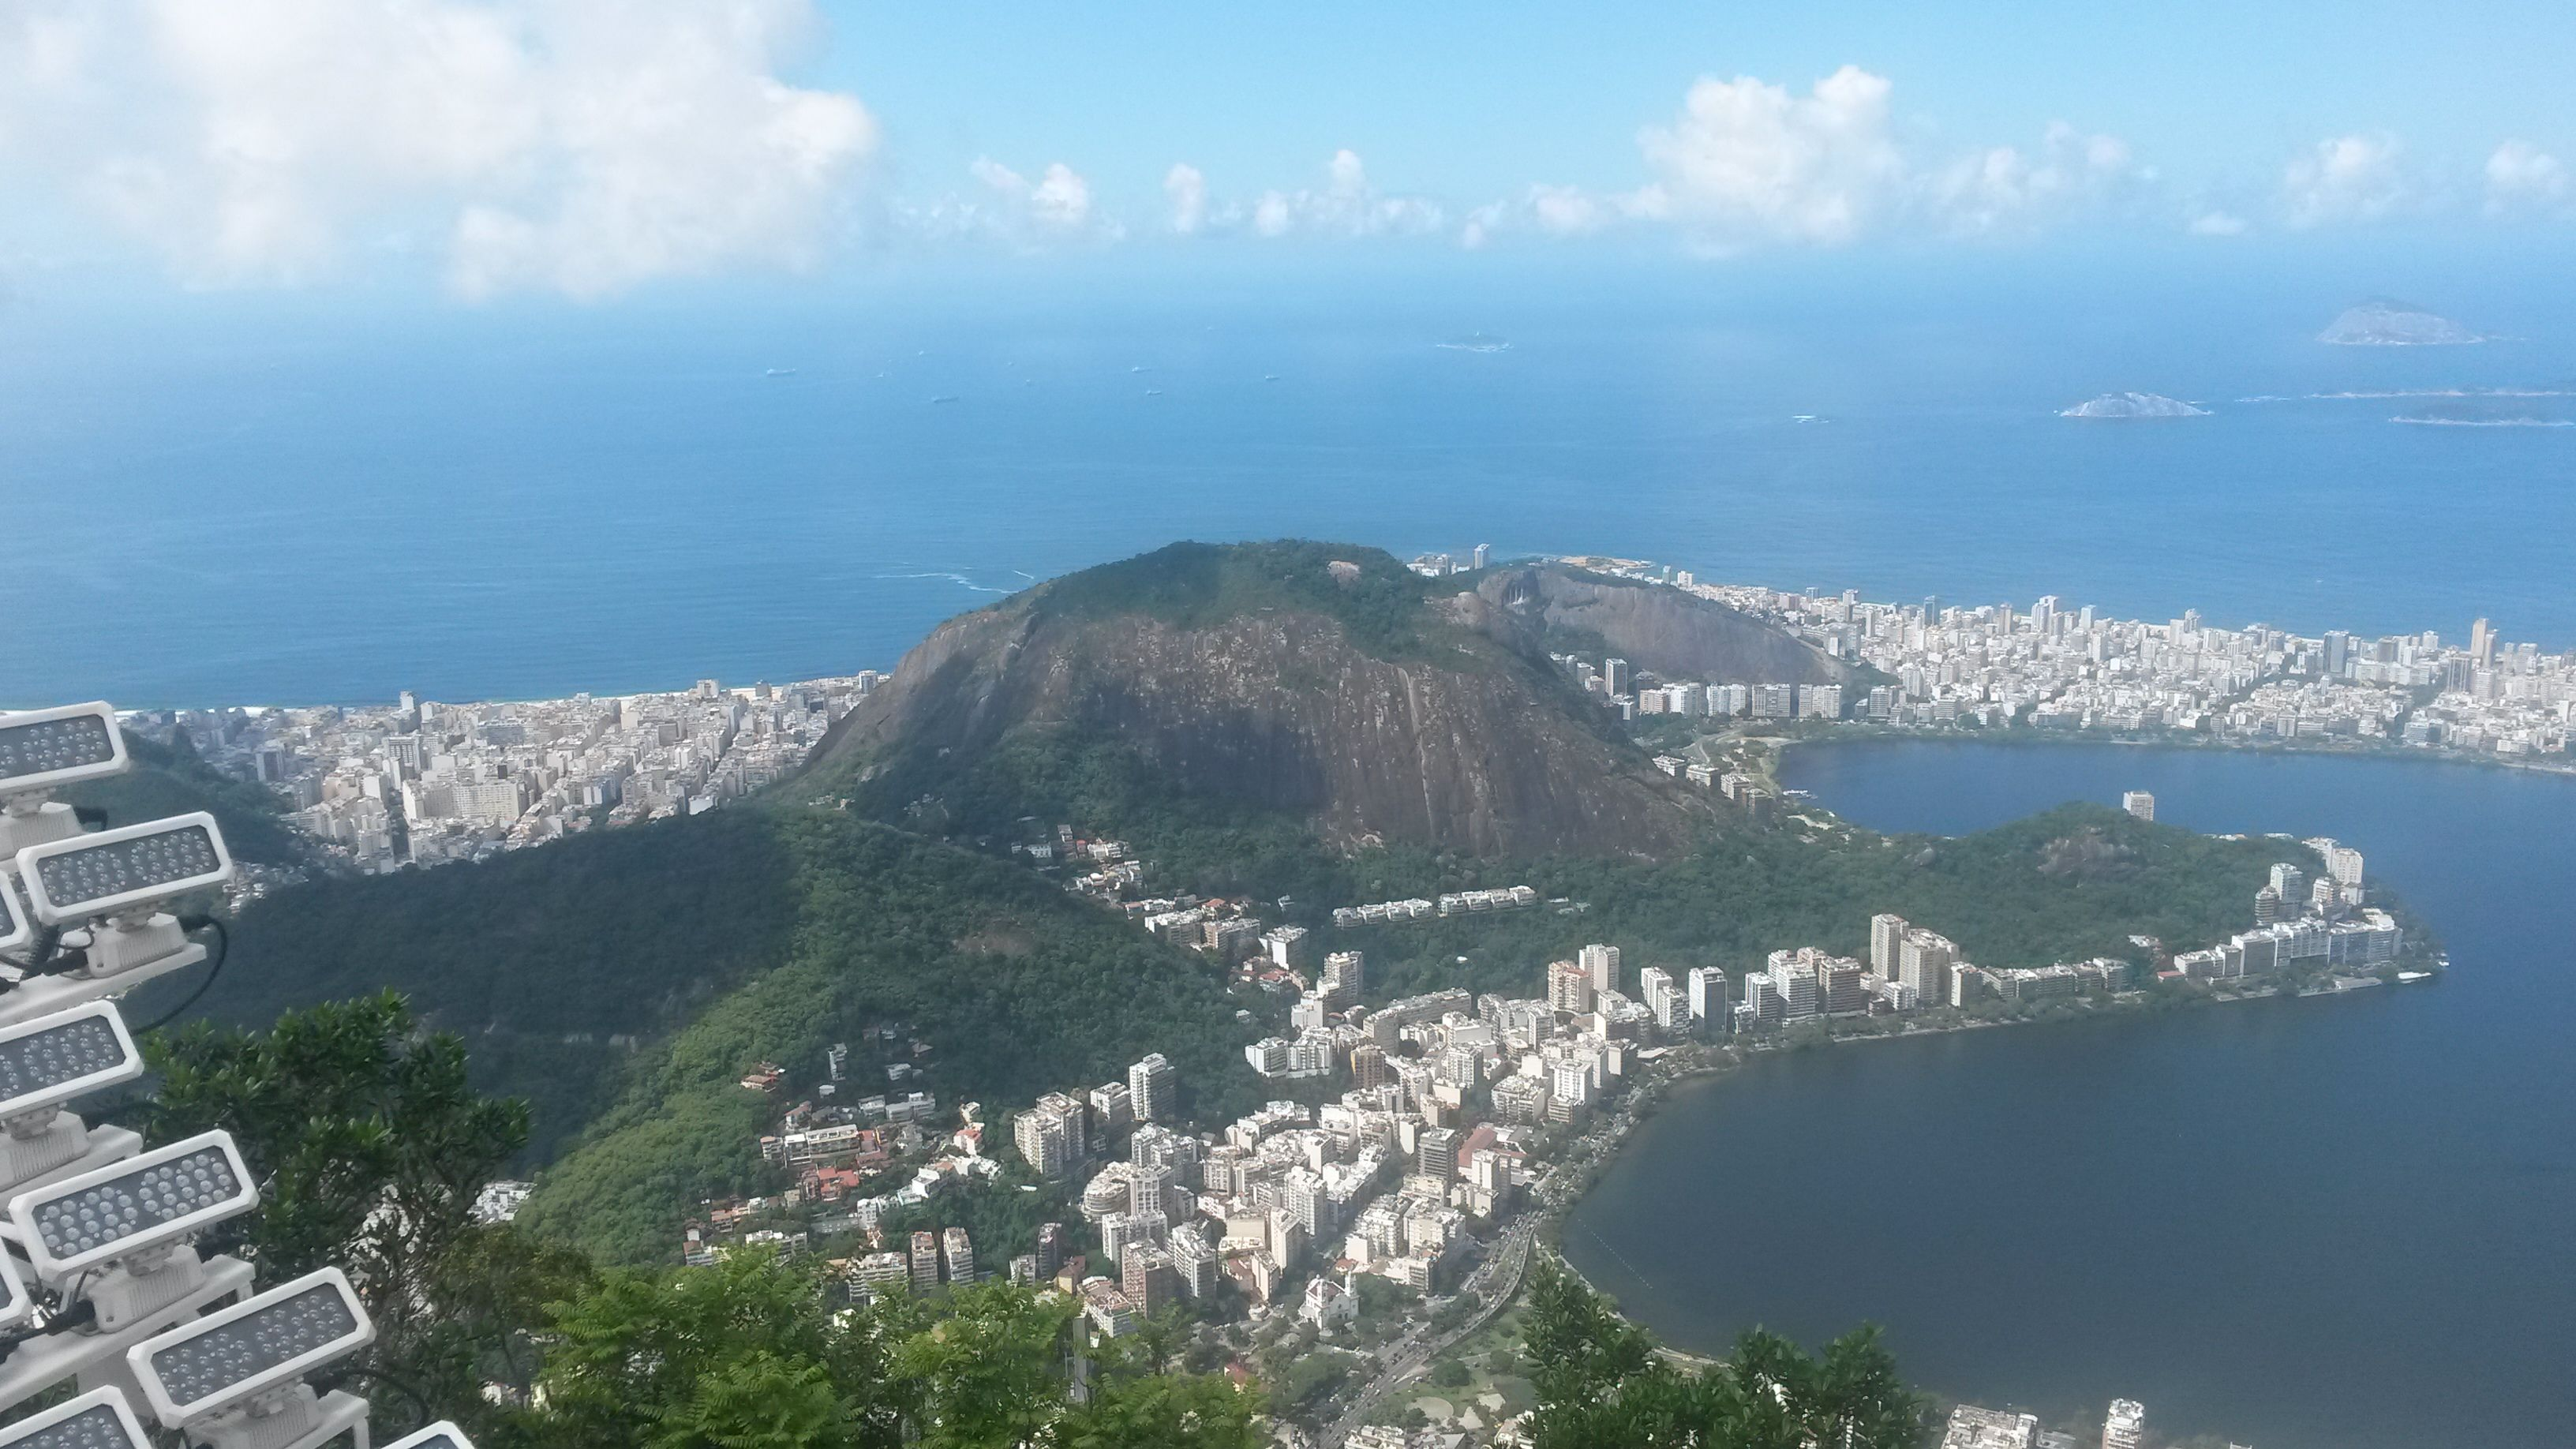 Incredible view of Rio de Janeiro from the balcony of Christ.